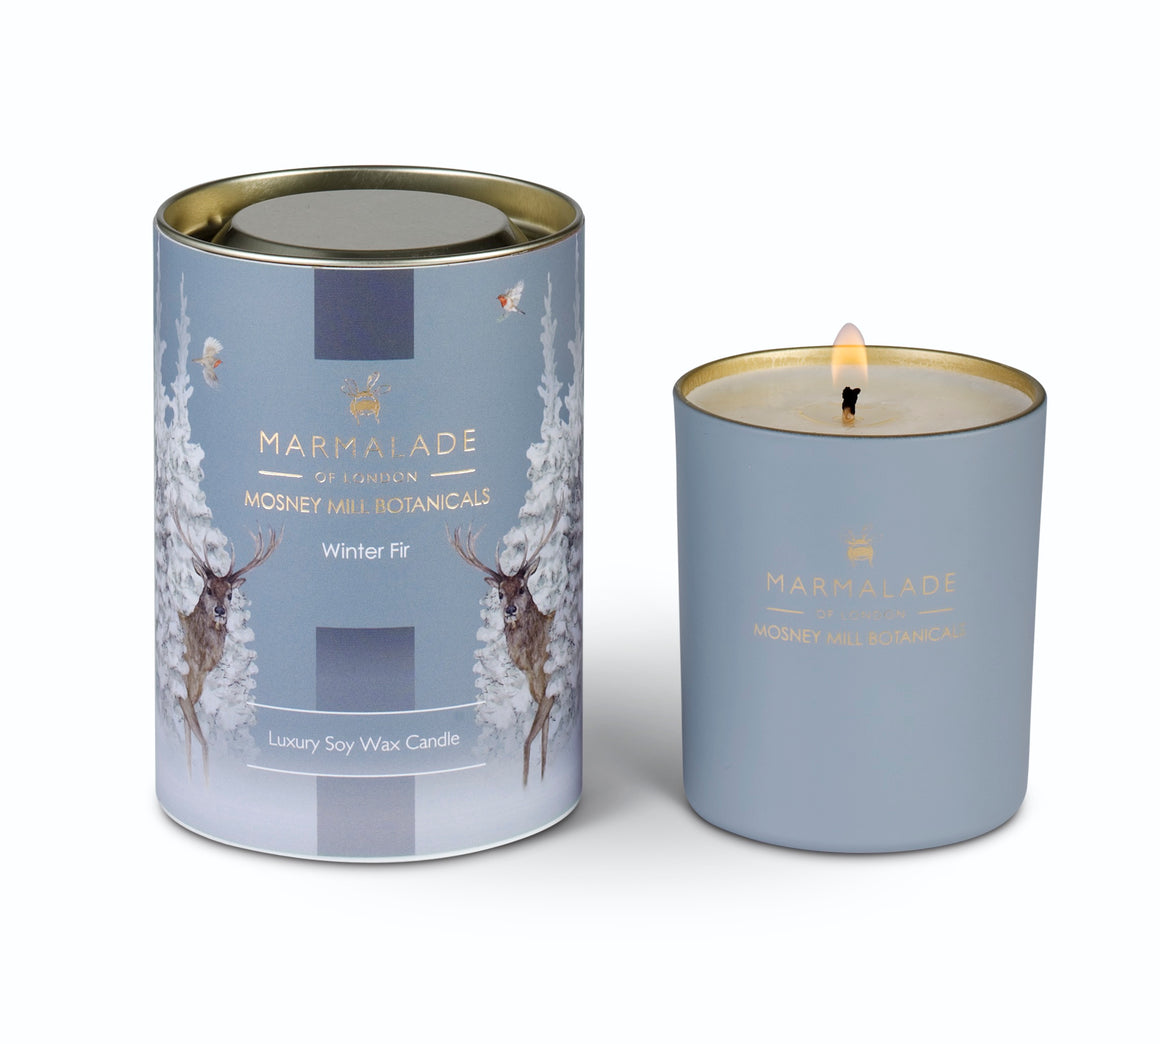 Marmalade of London Mosney Mill Botanicals Winter Fir Glass Candle